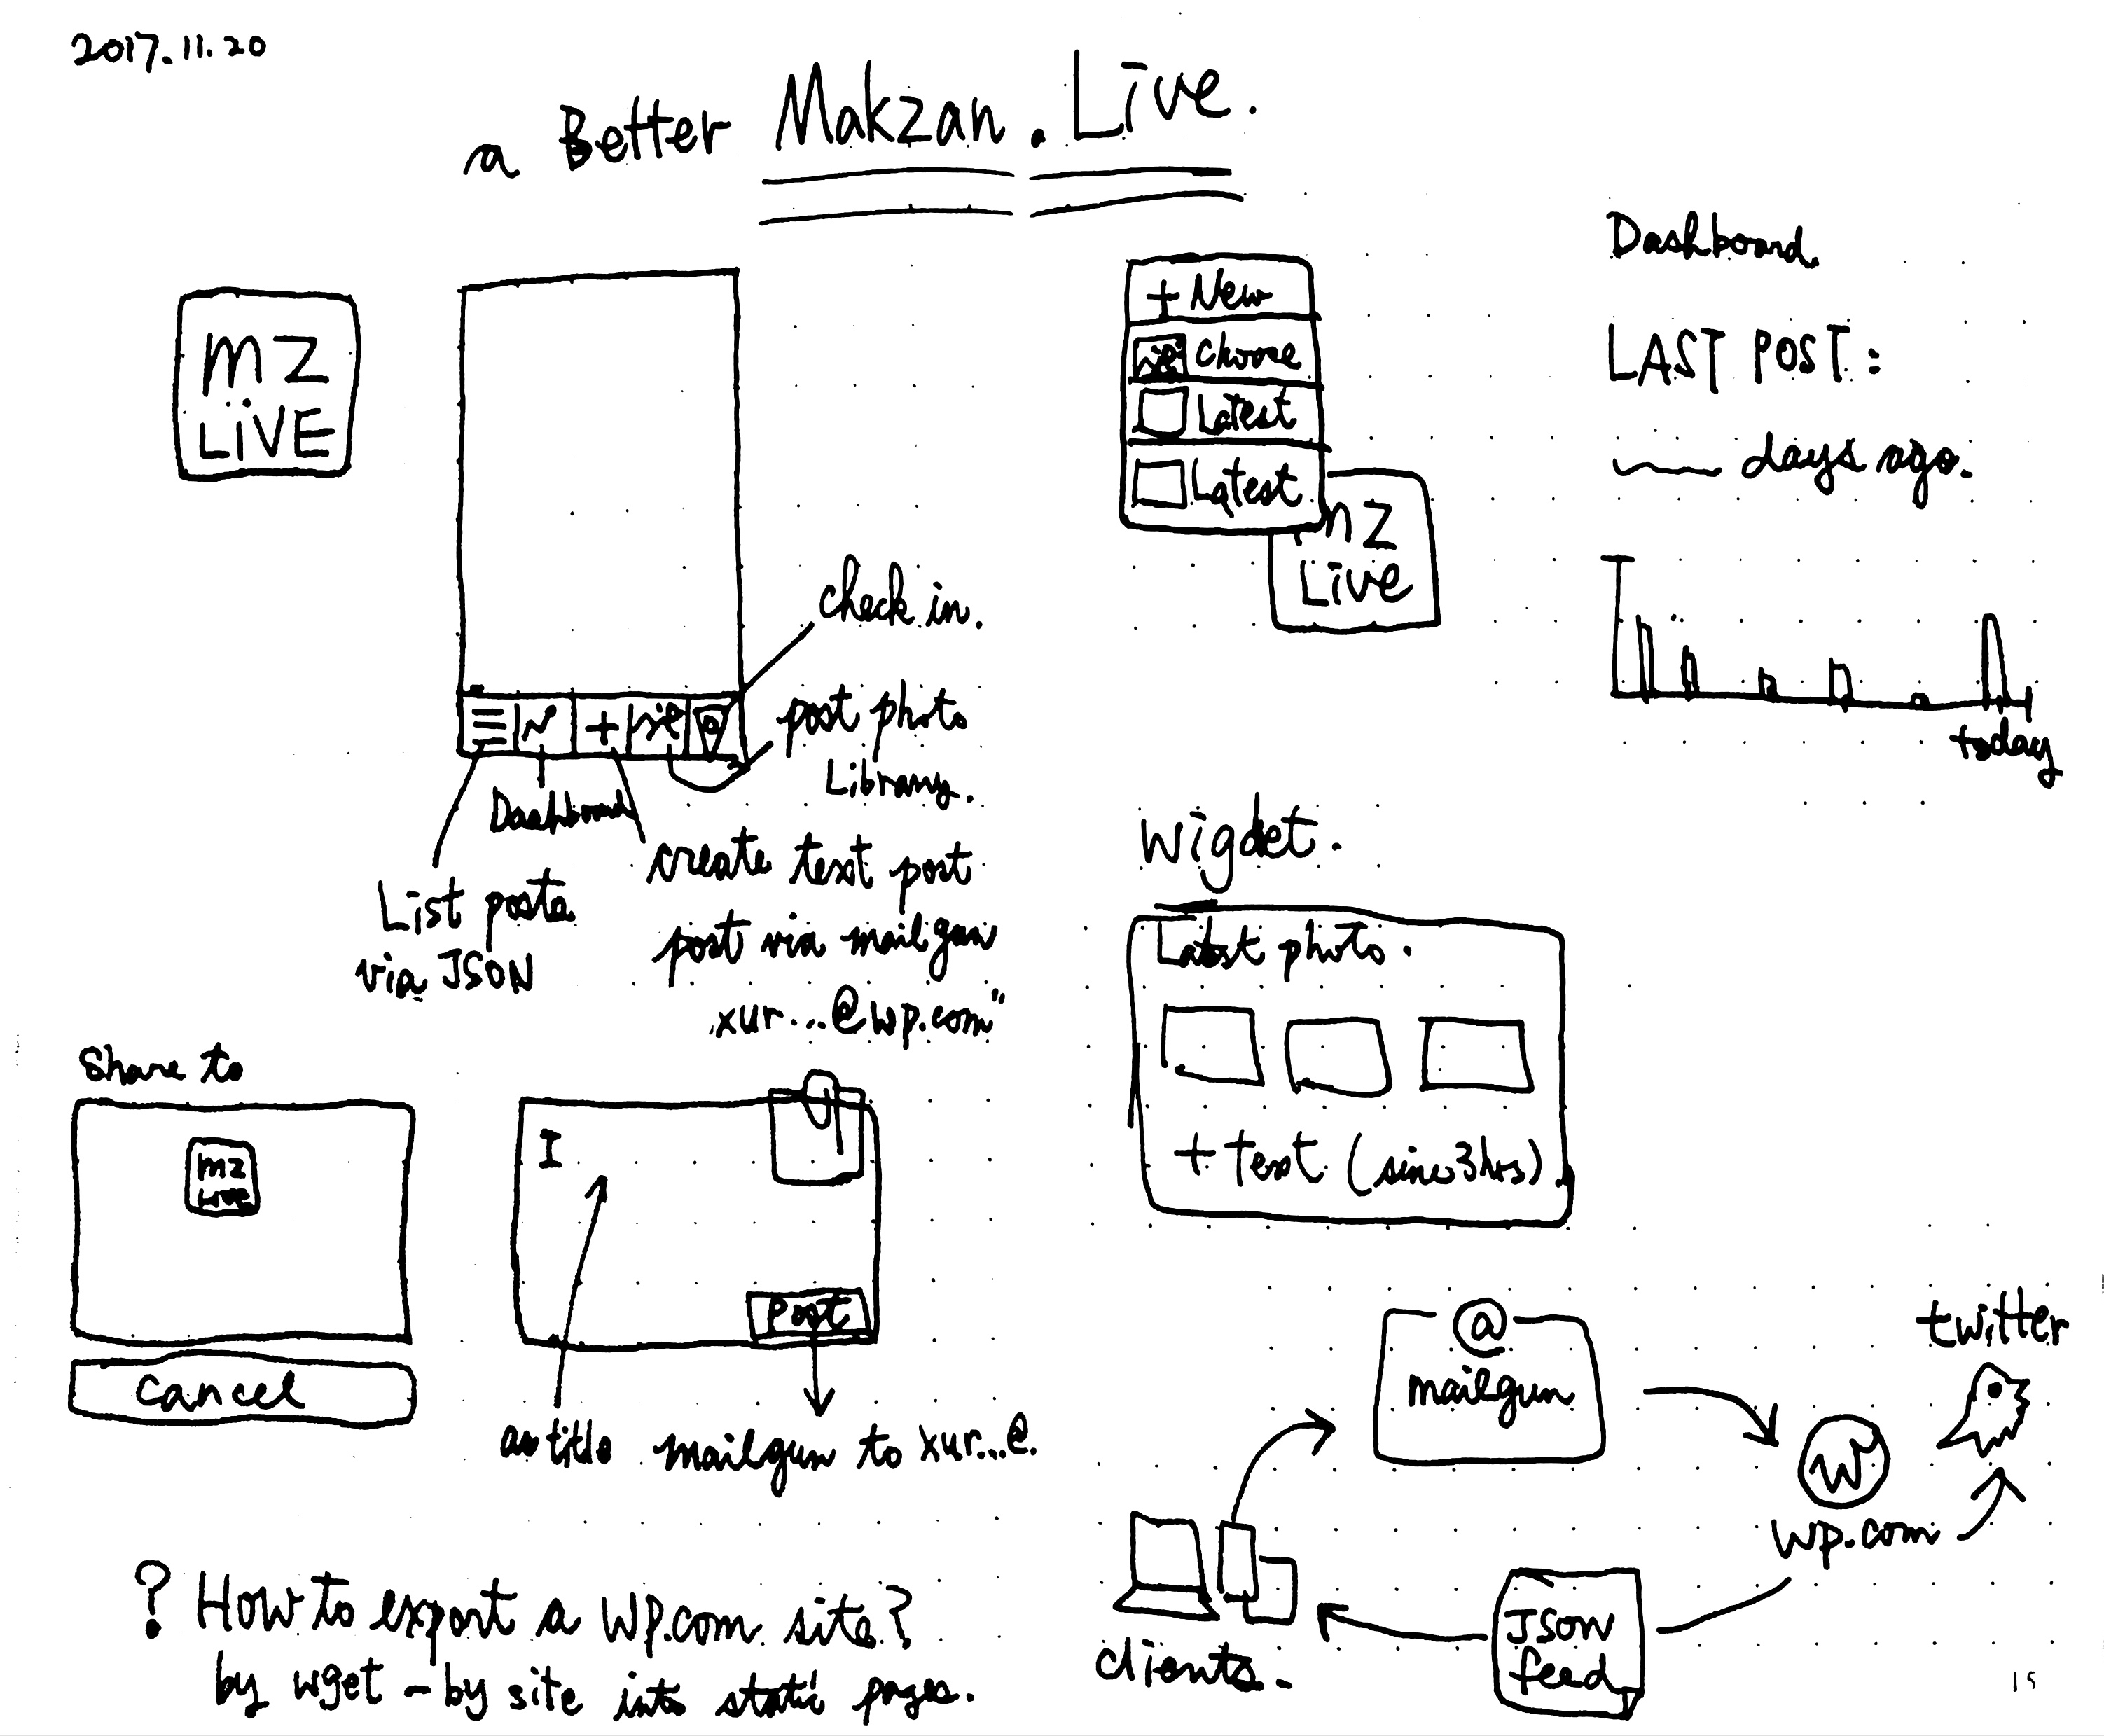 an idea to improve my makzan.live posting flow.